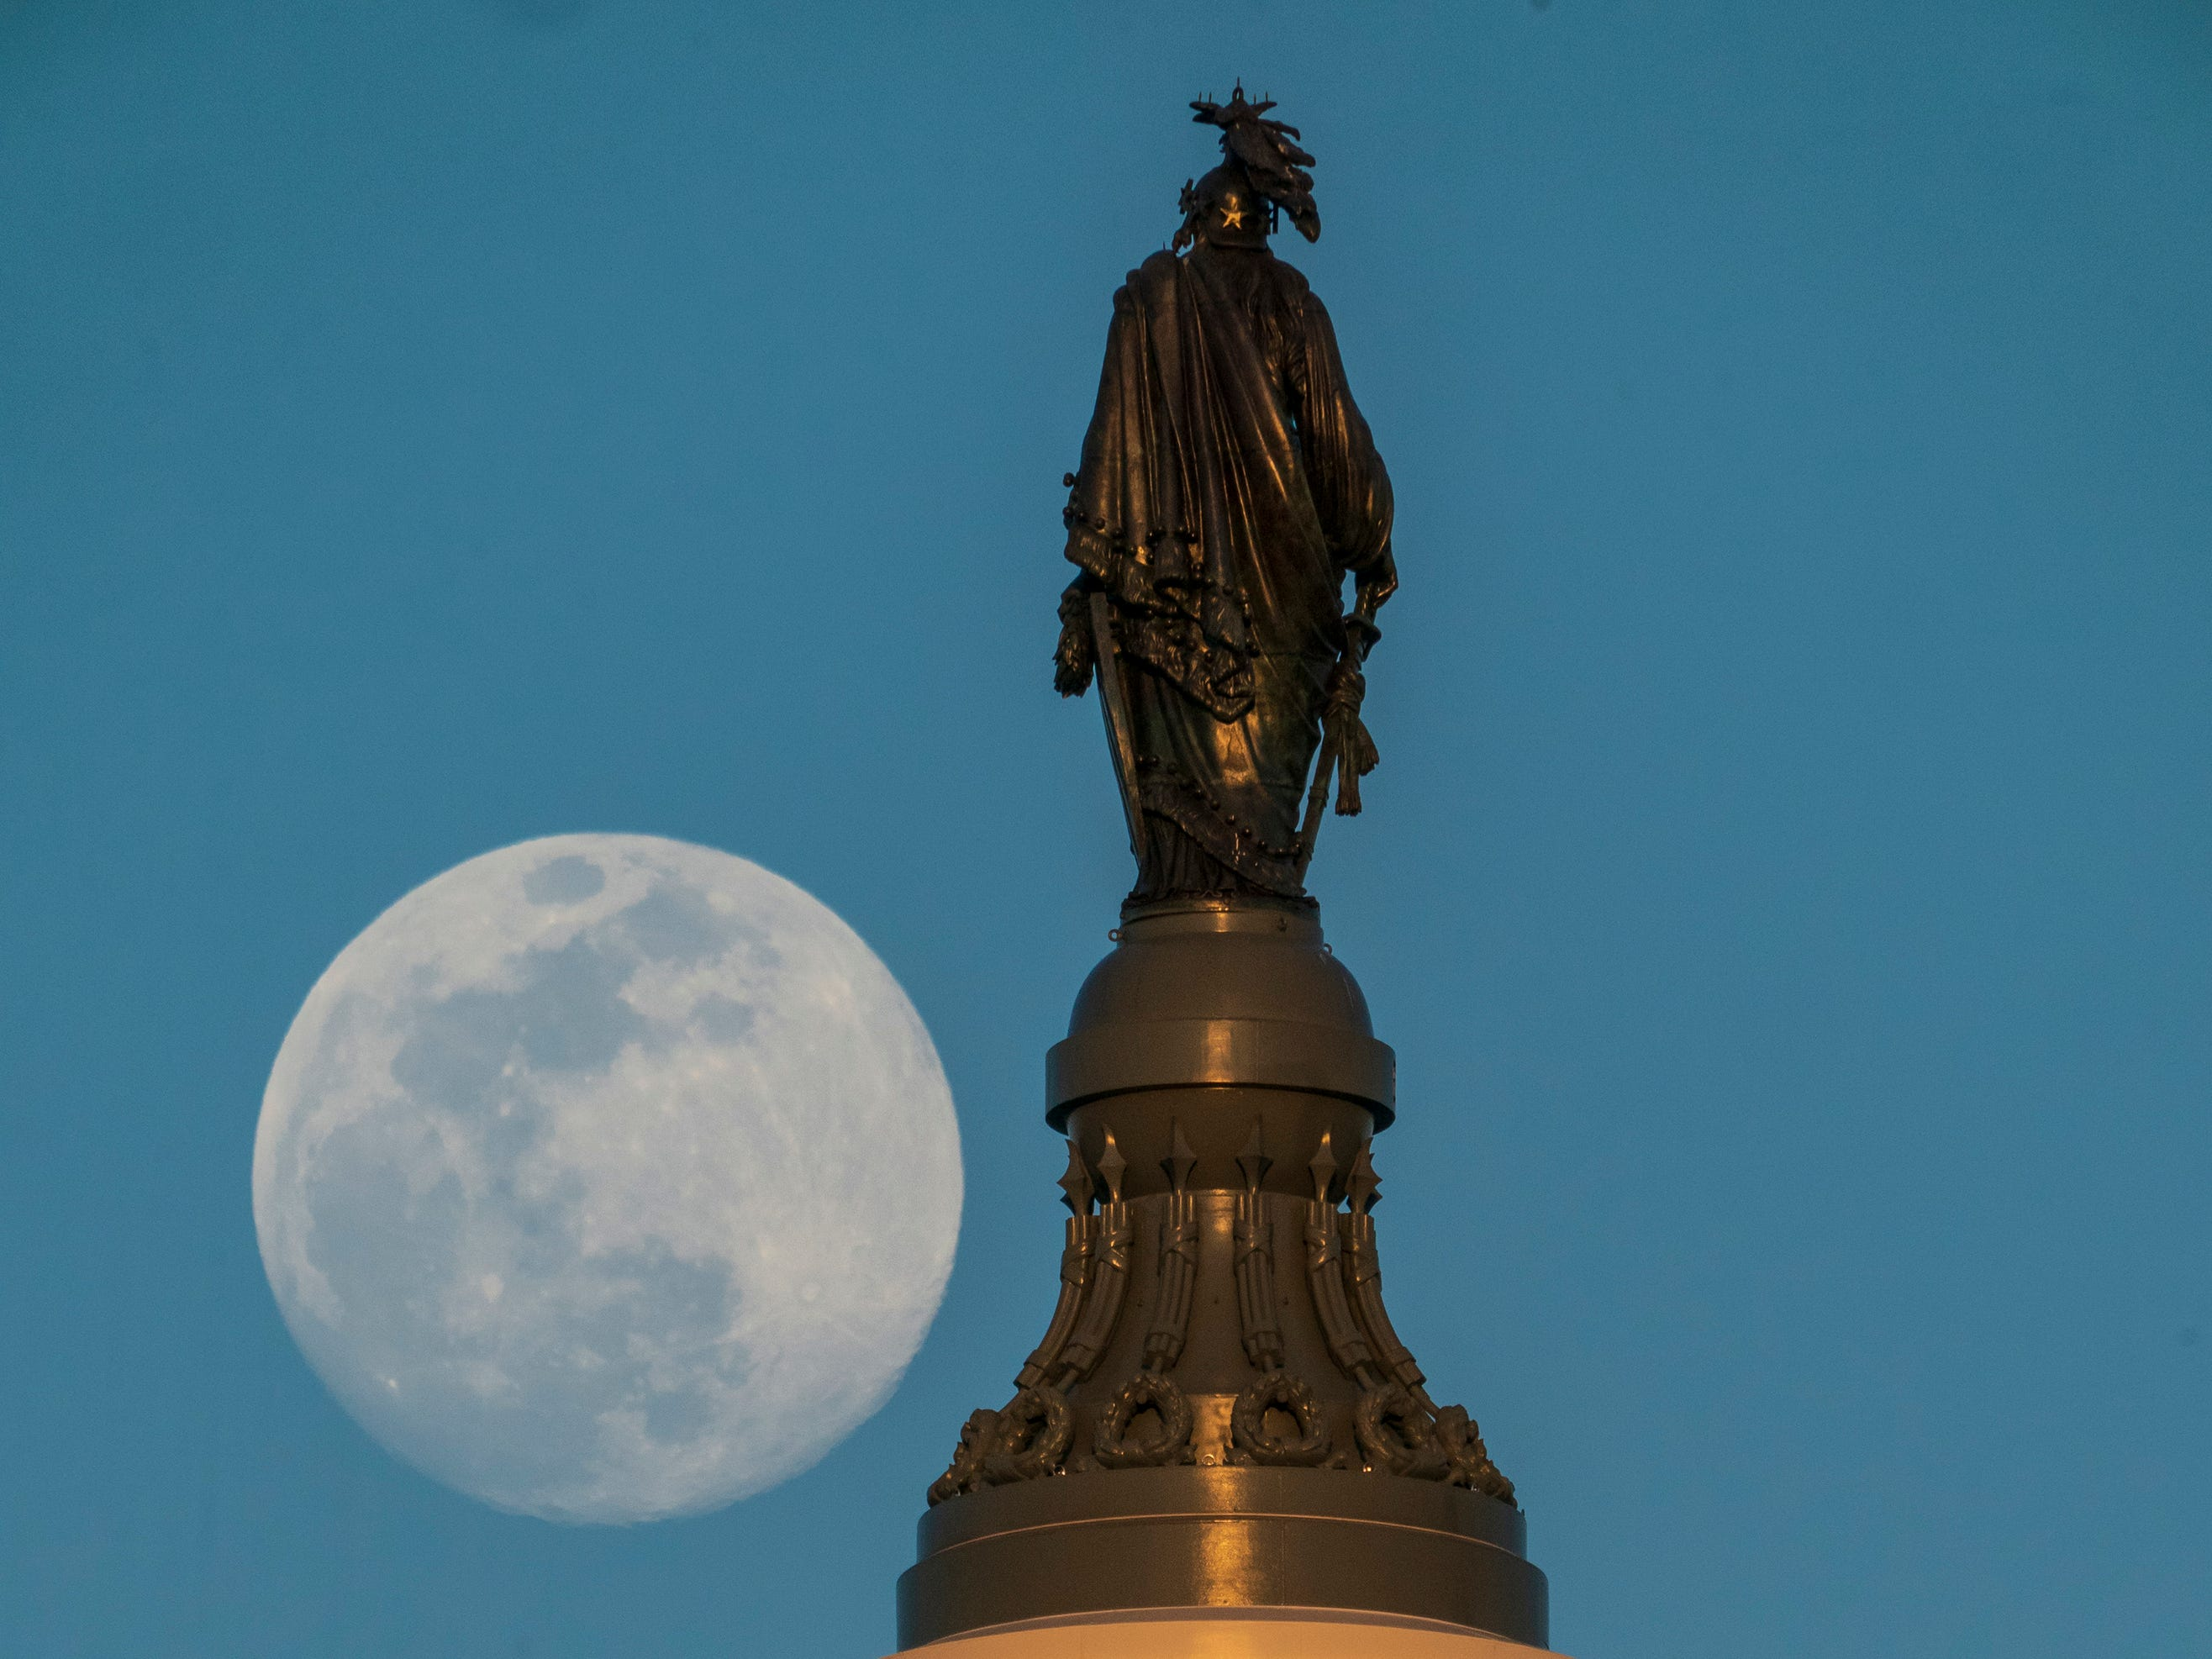 A full moon rises behind the Statue of Freedom atop the U.S. Capitol in Washington, Tuesday evening, March 19, 2019.